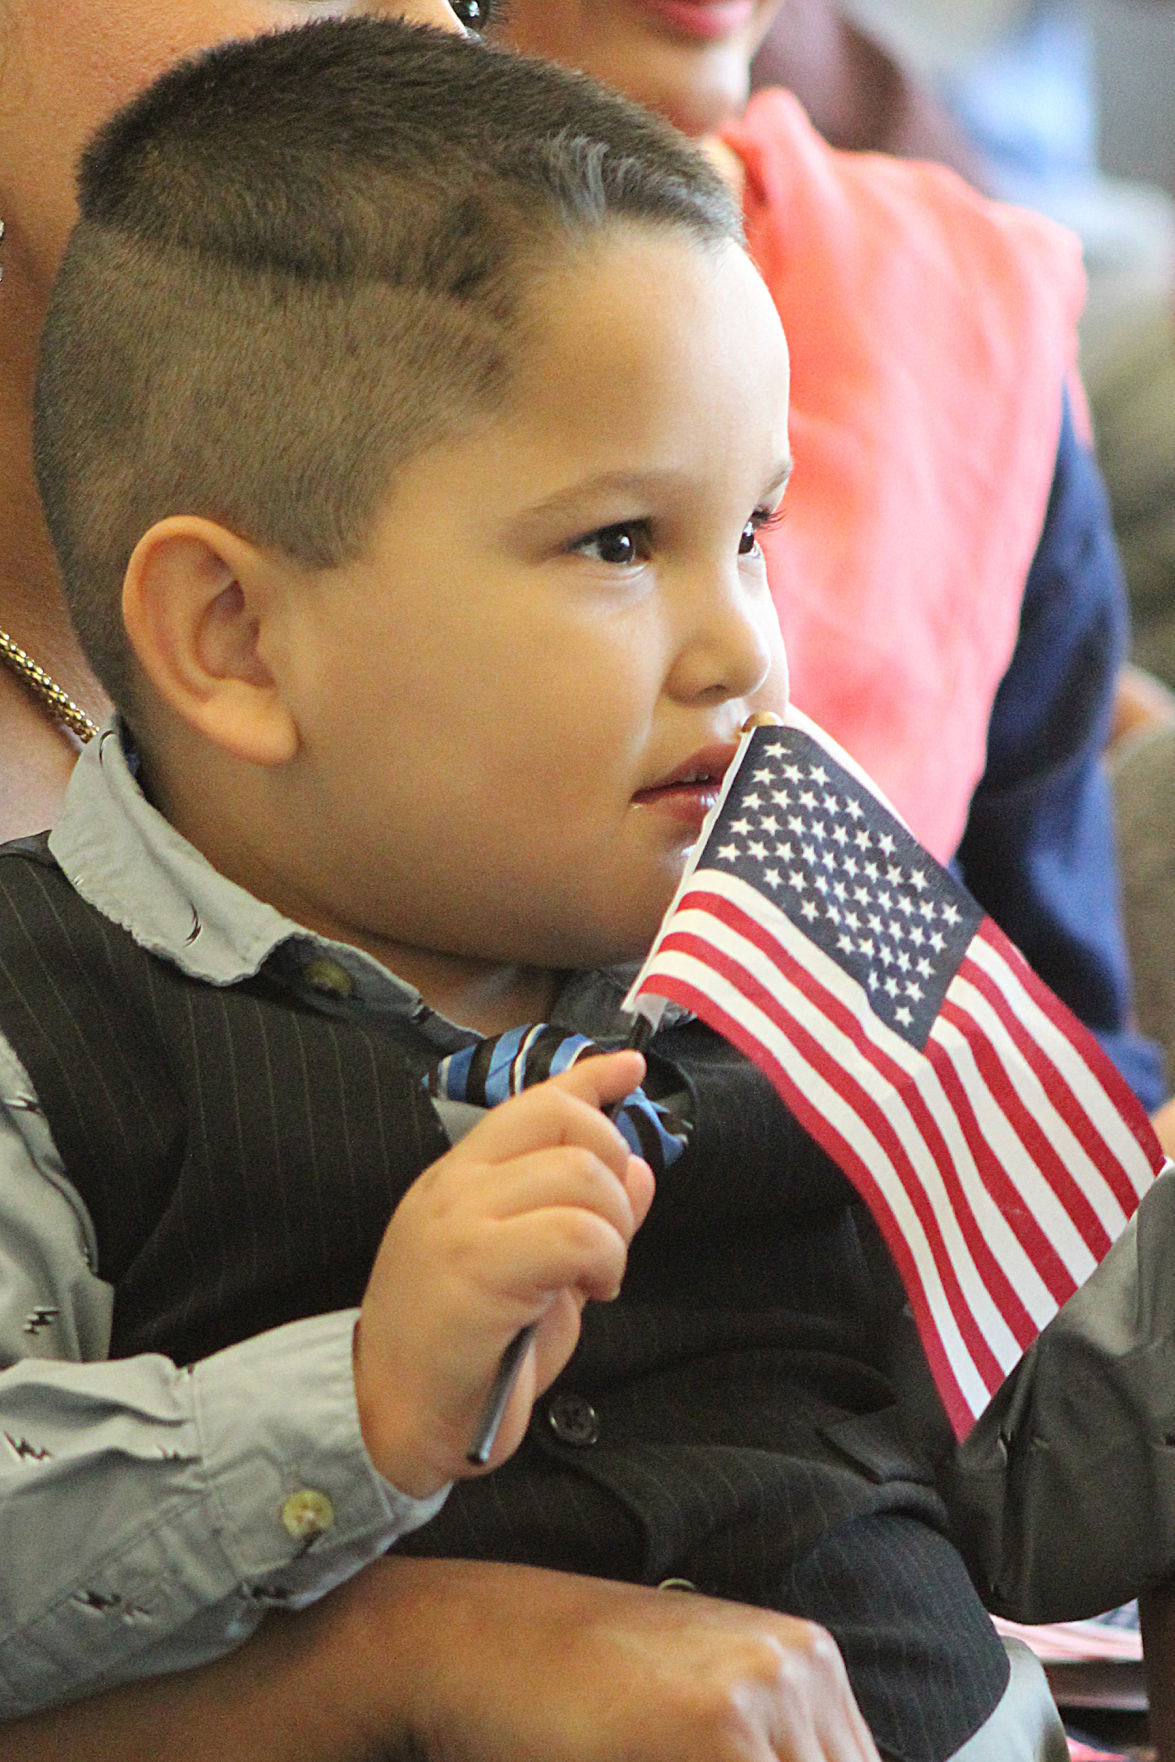 New Americans: Youngest